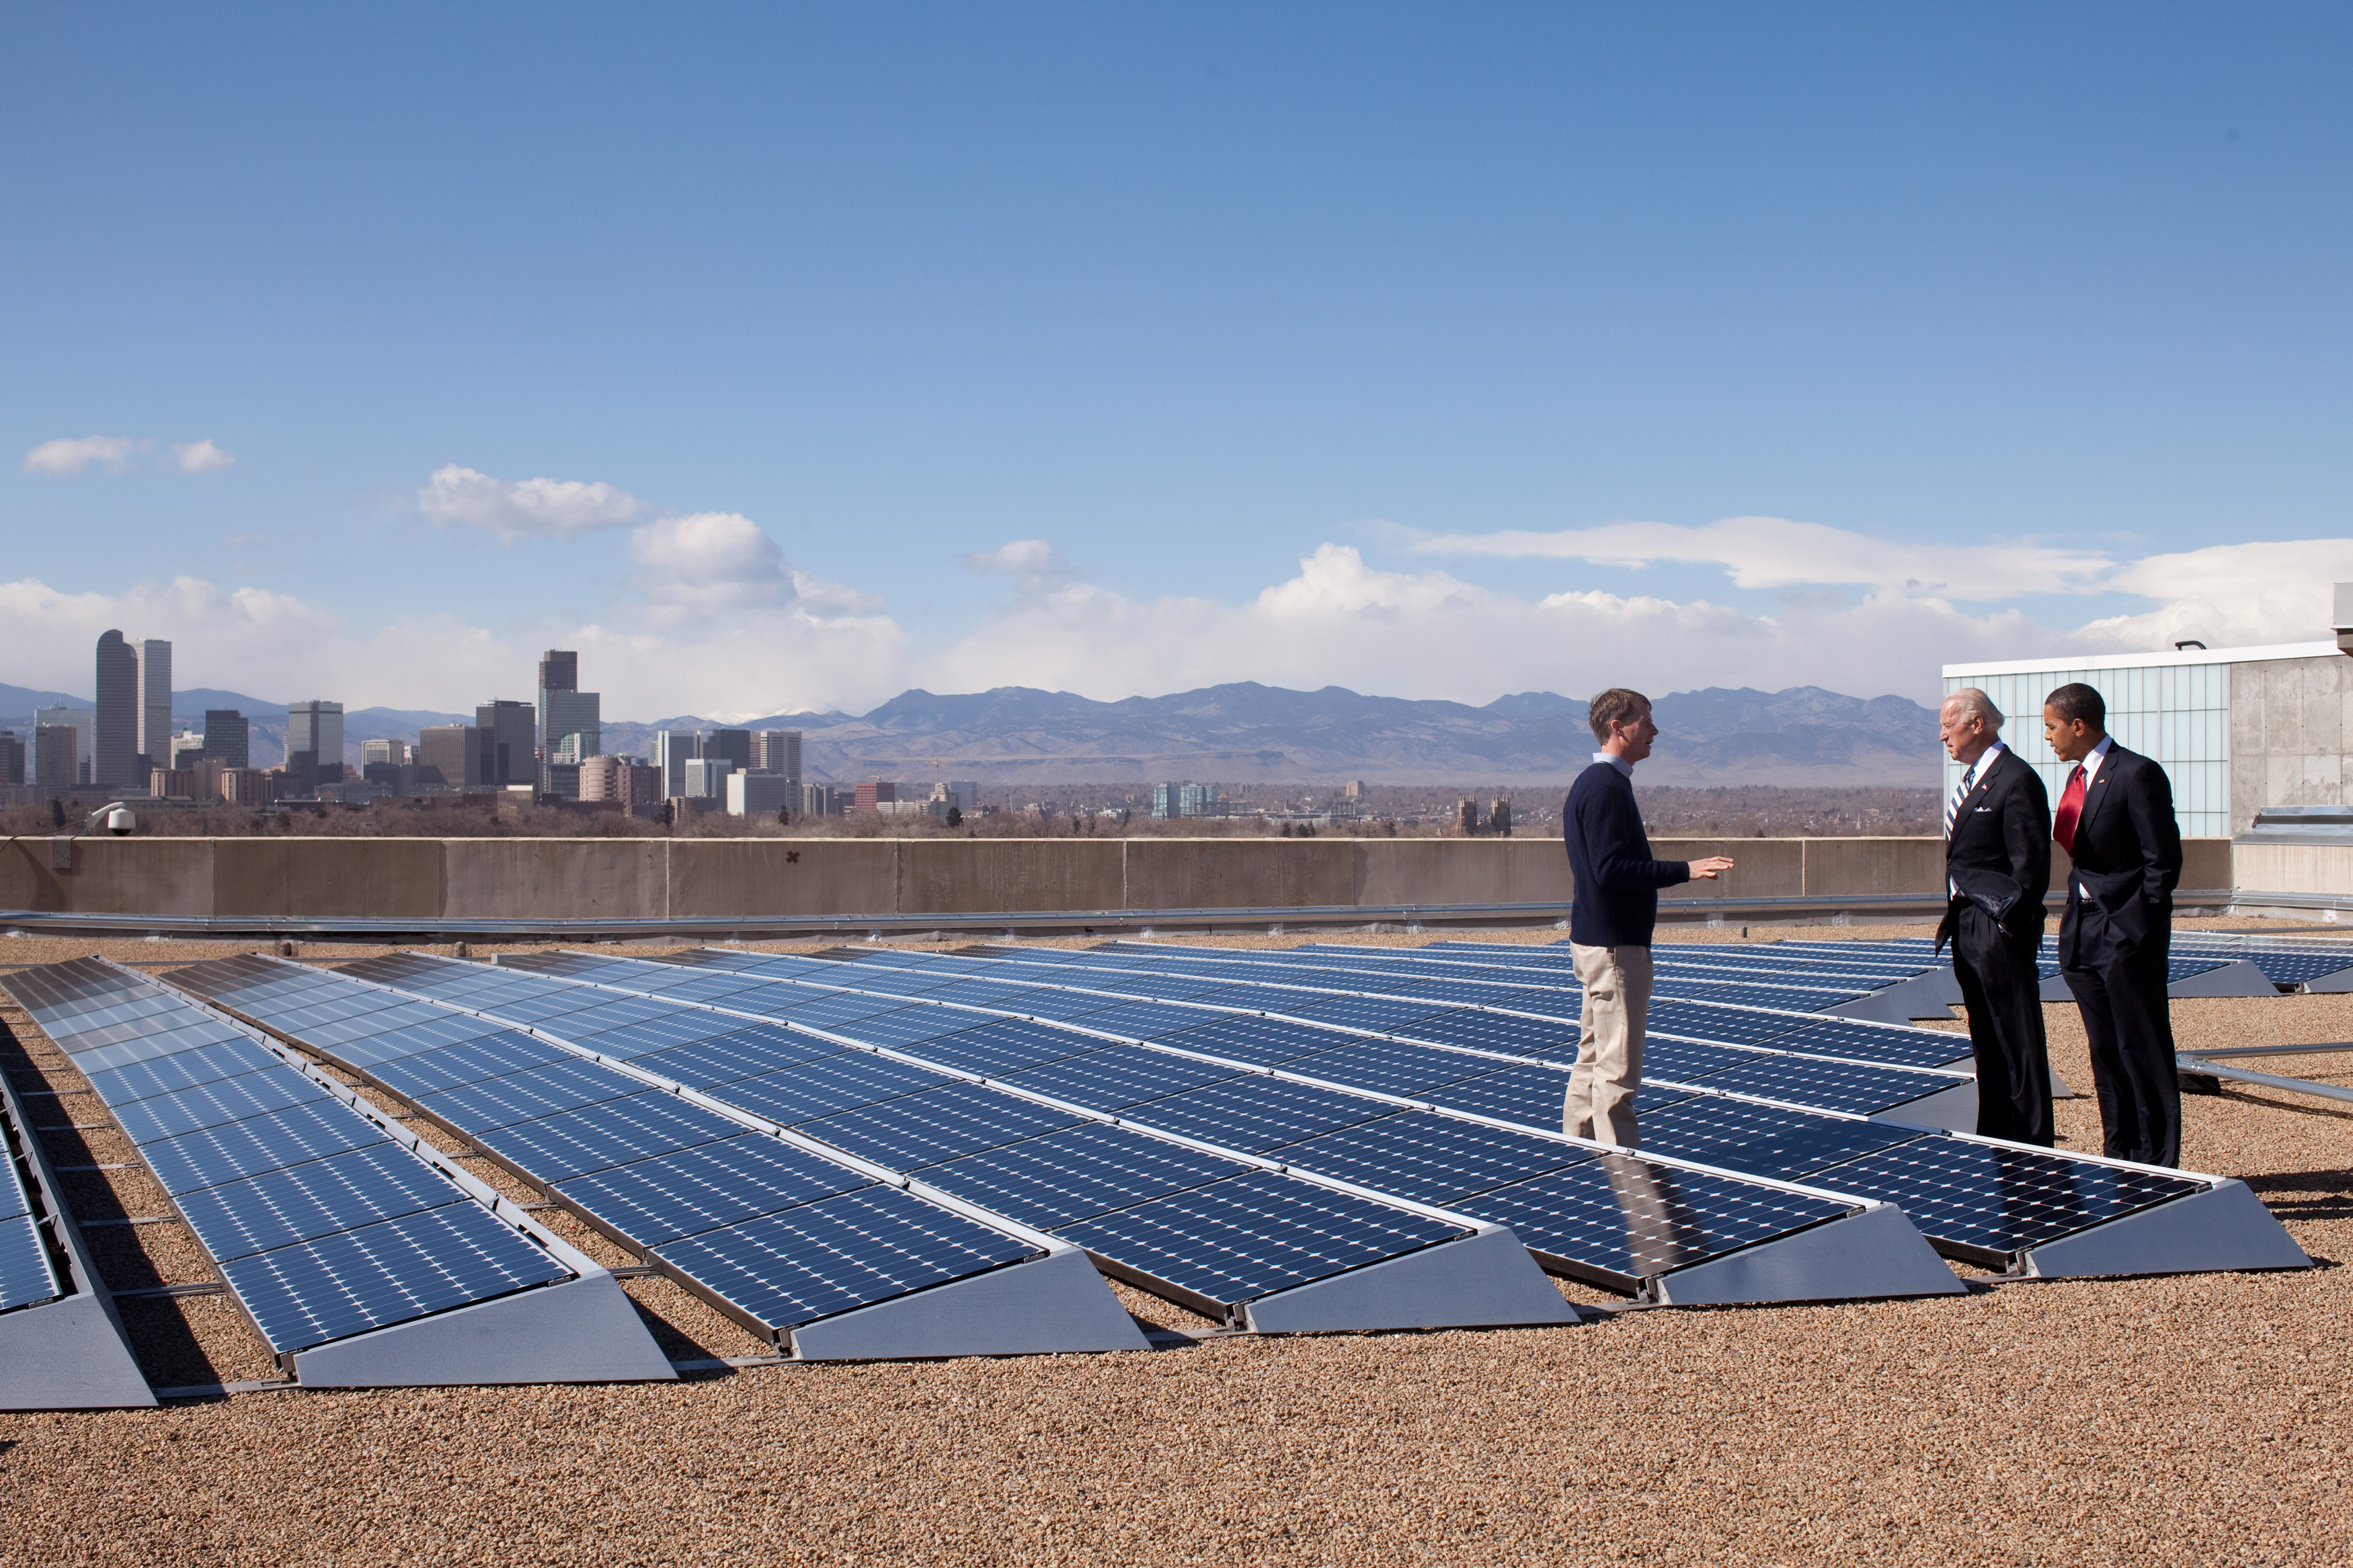 Rooftop solar panels for businesses and homes